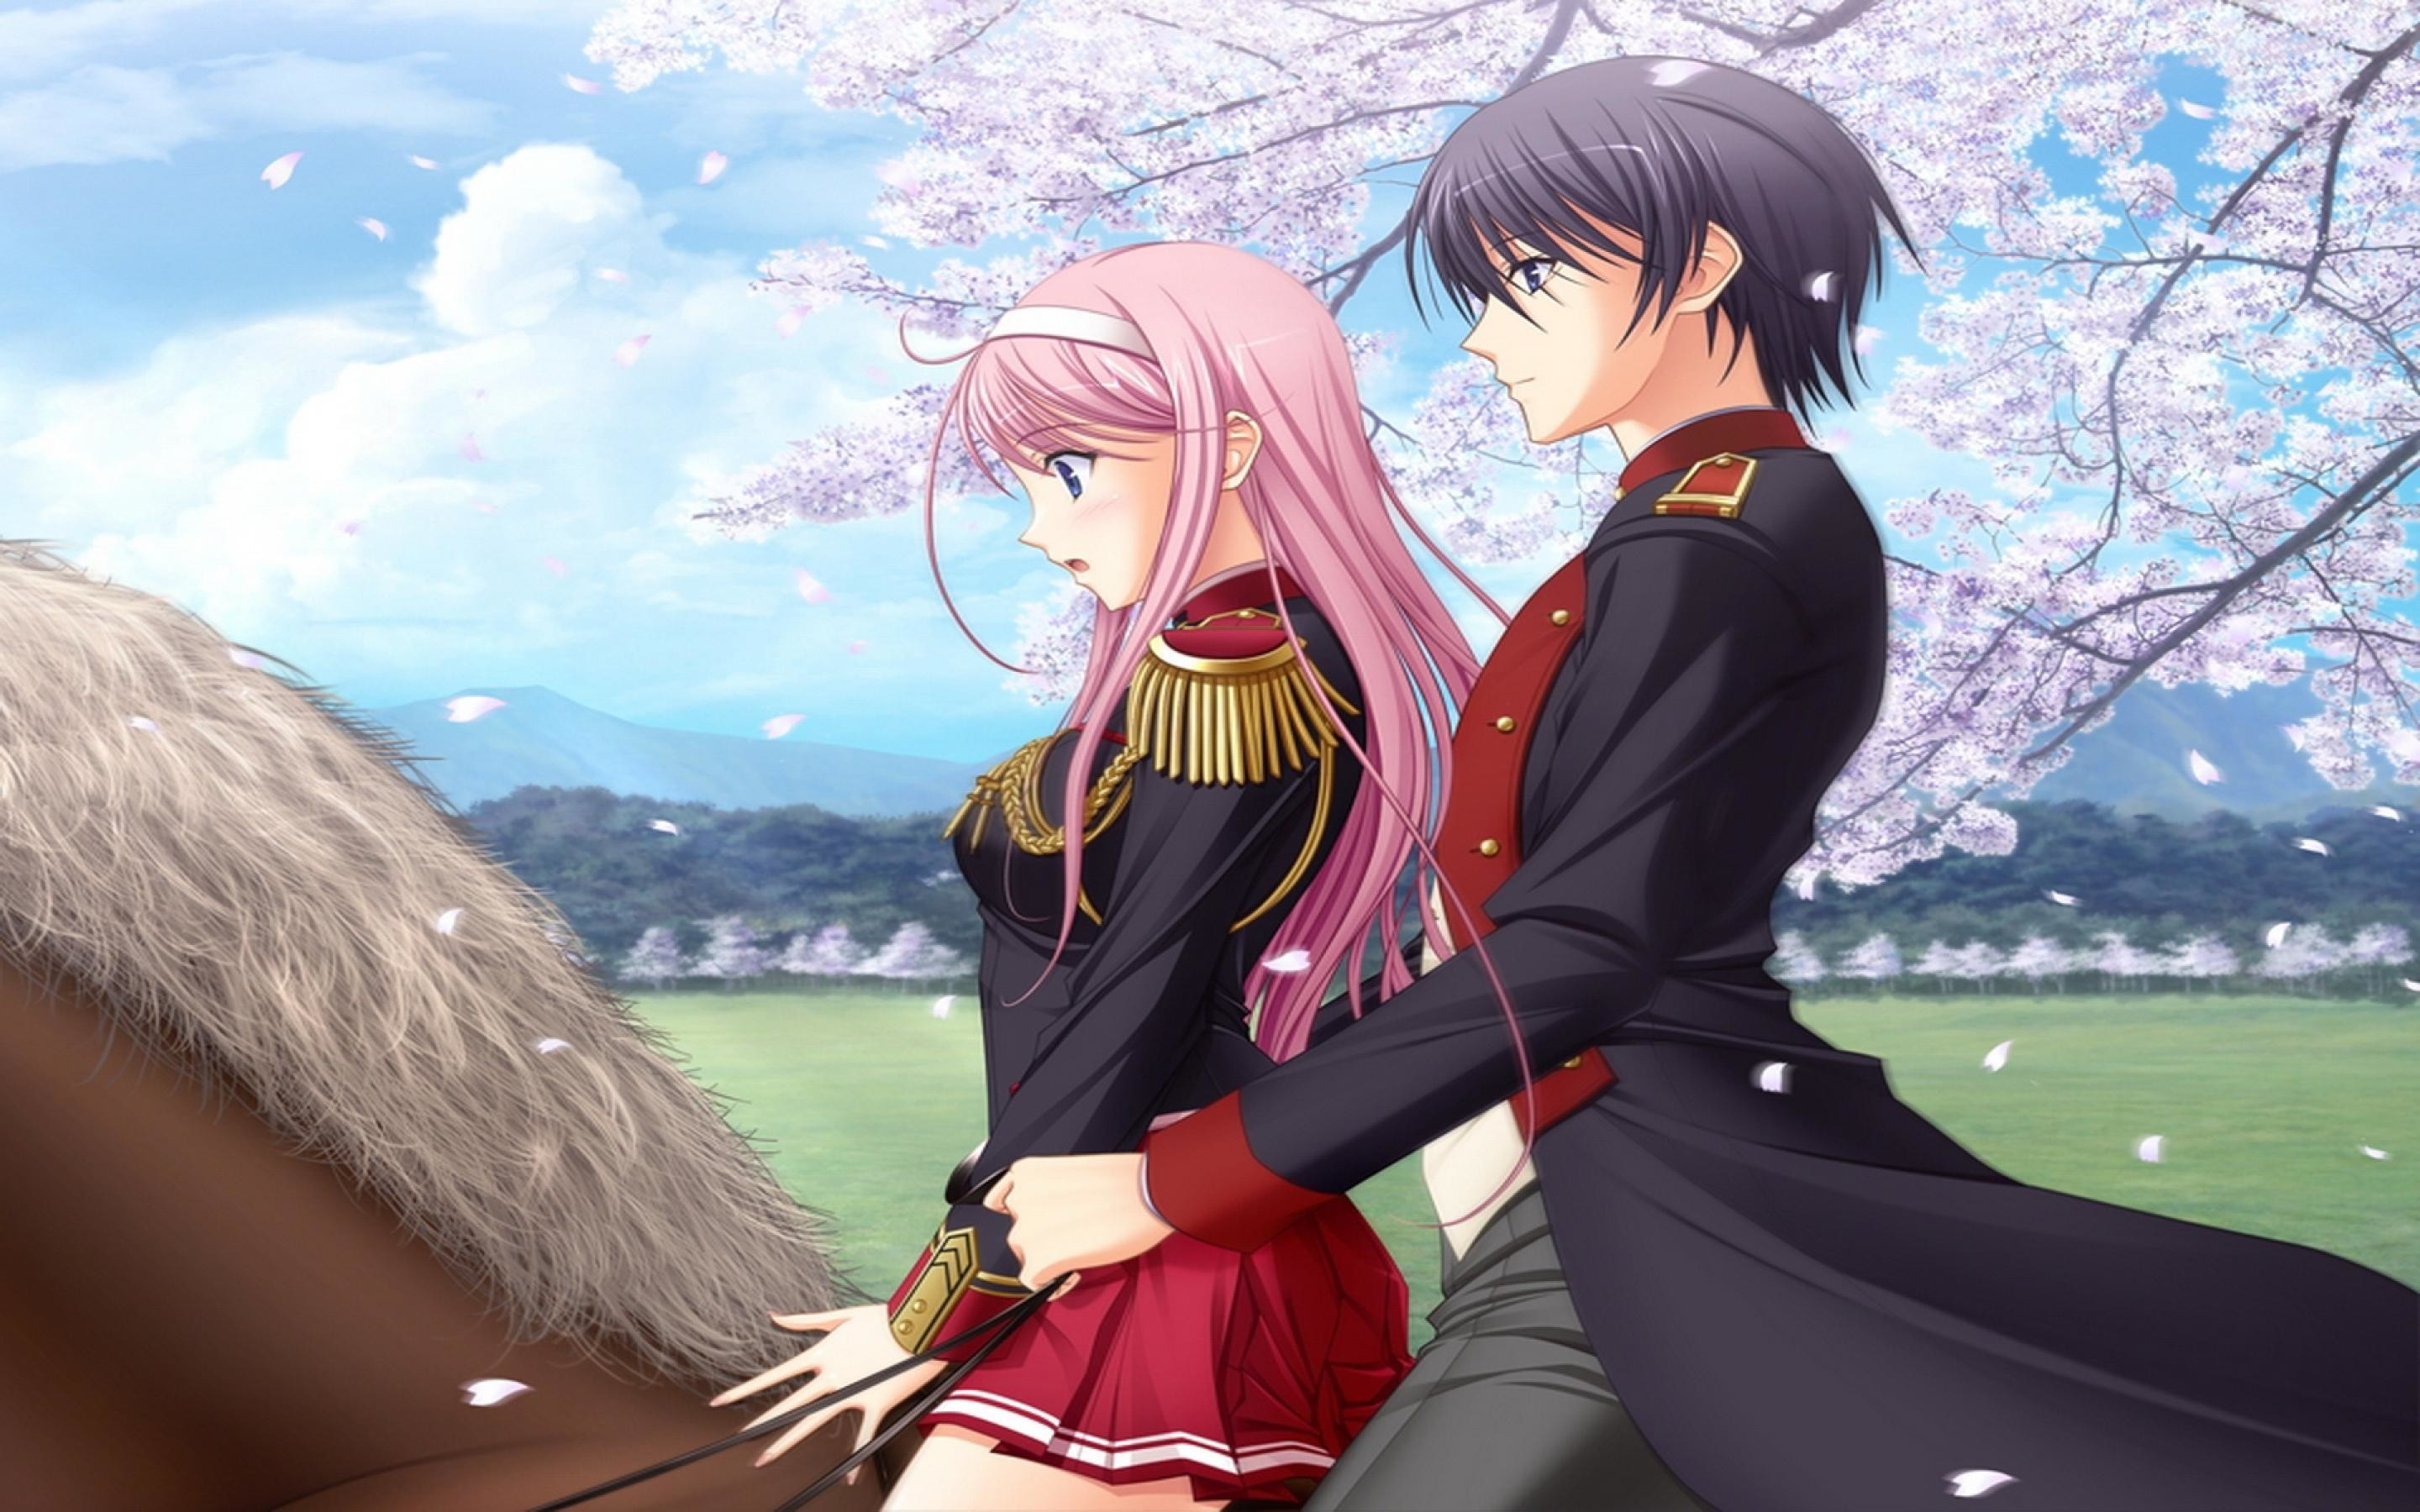 Anime Images Wallpaper Love Couples Couple Hd Wallpaper: Anime Love Wallpapers ·① WallpaperTag